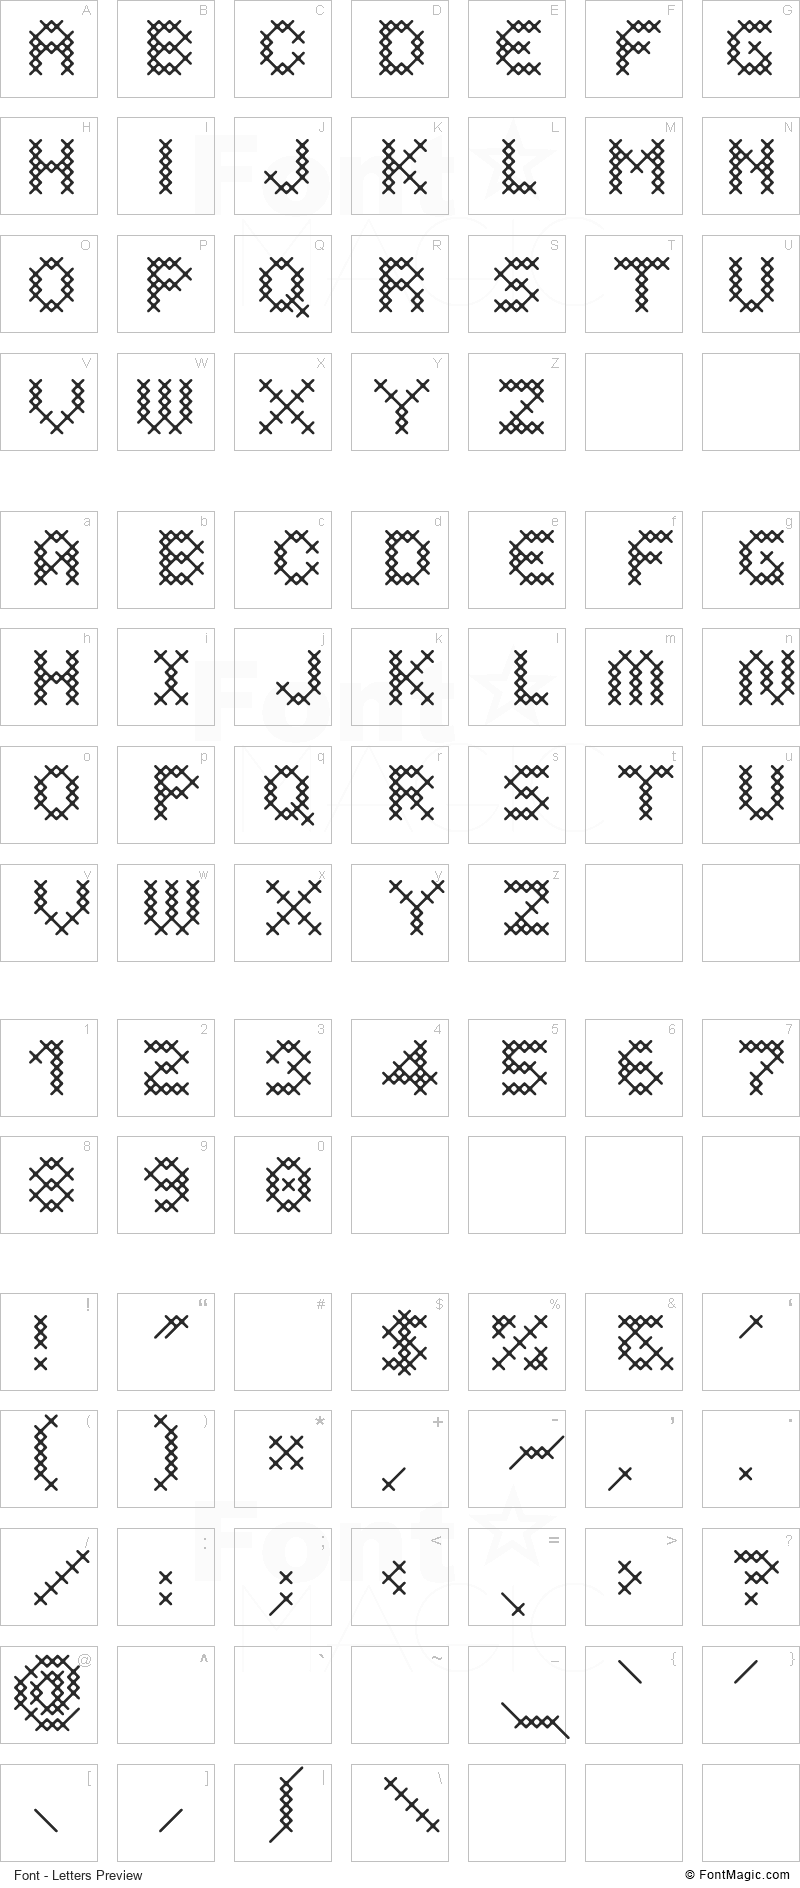 Costura Font - All Latters Preview Chart